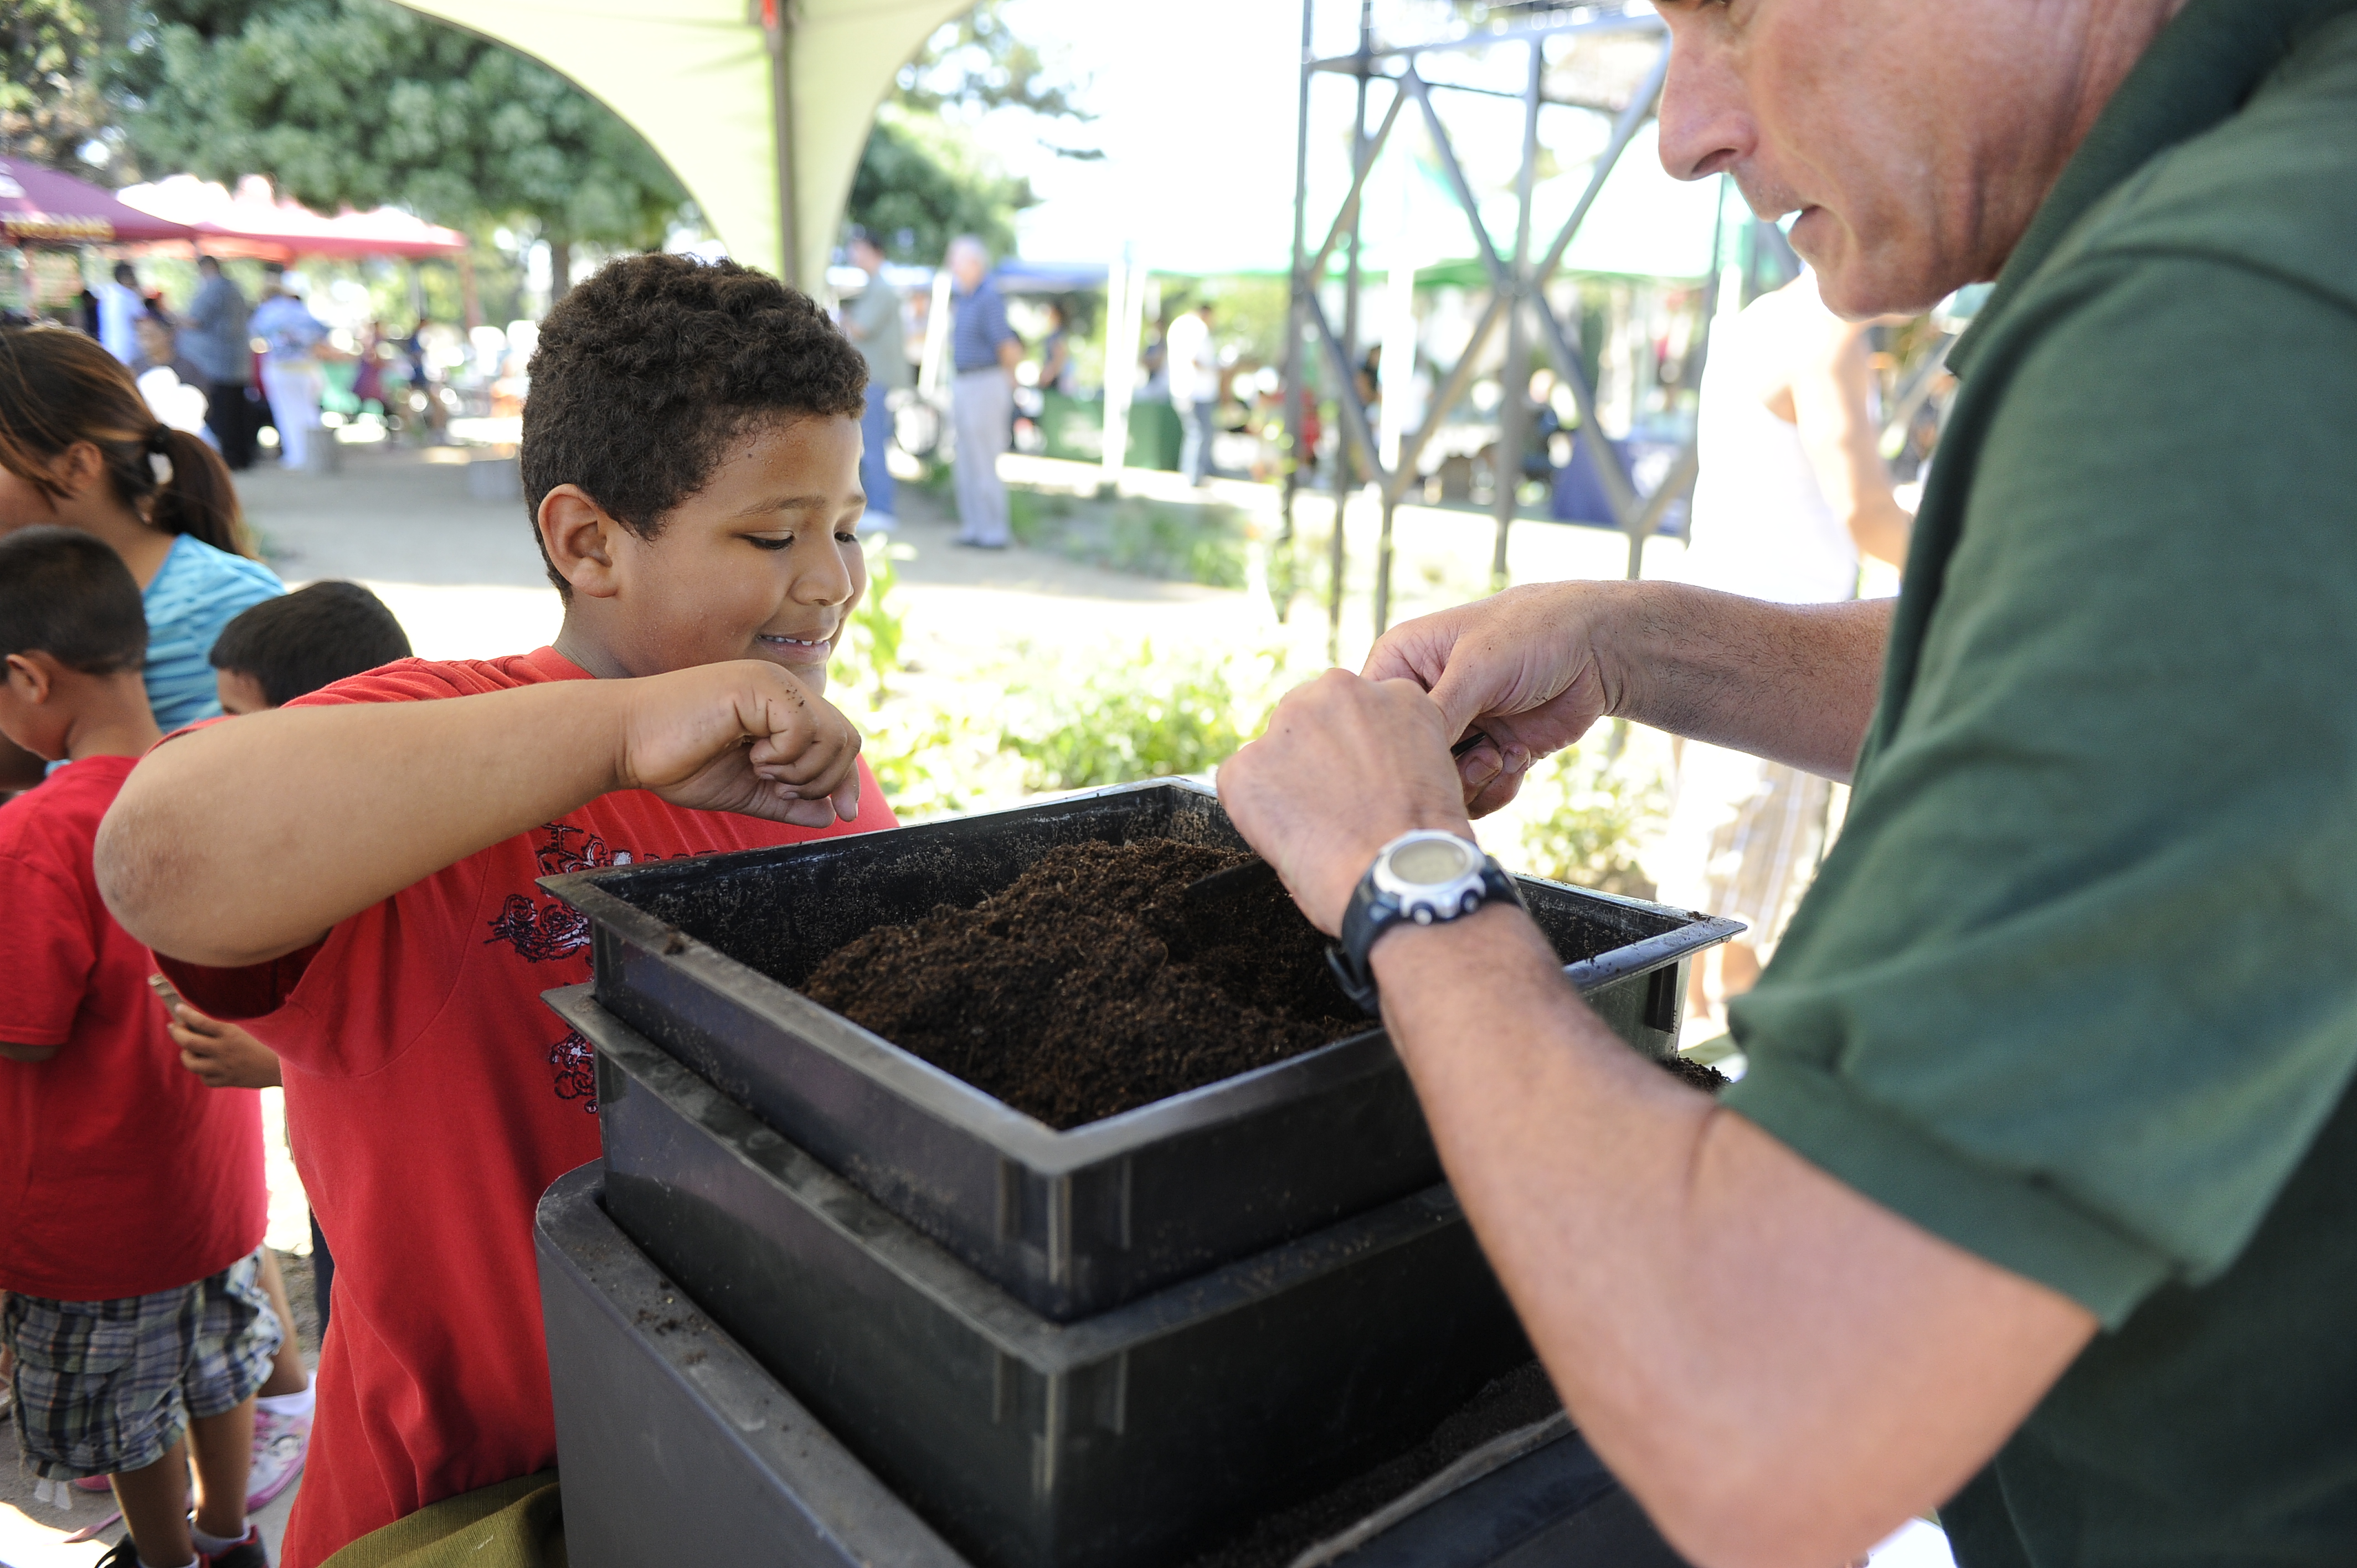 Young boy sticking his fingers in the dirt box while a man scoops dirt out